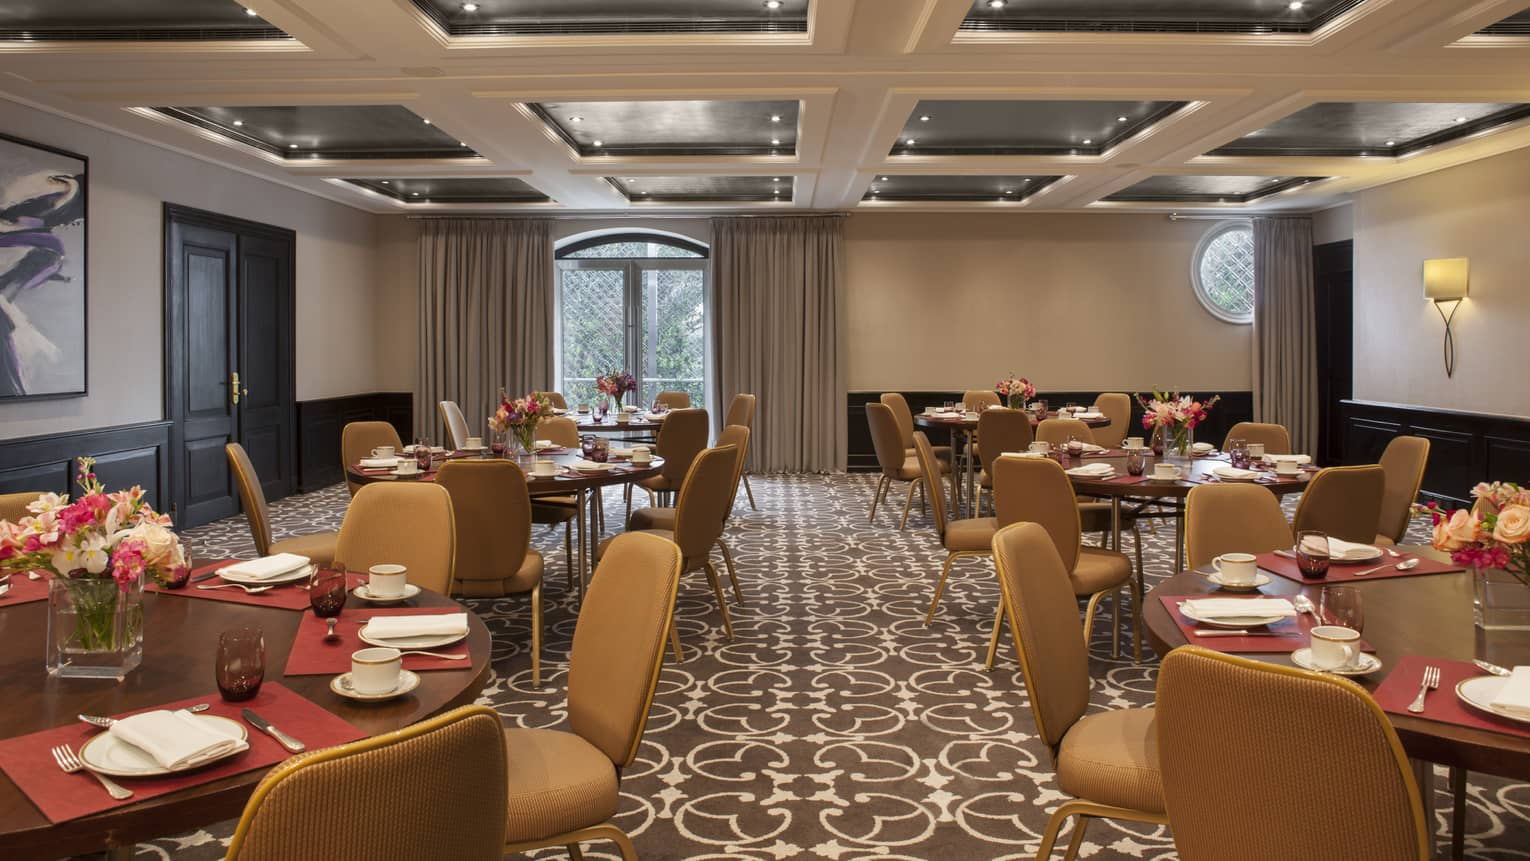 Blas Meeting Room round tables with tan chairs, panel ceiling